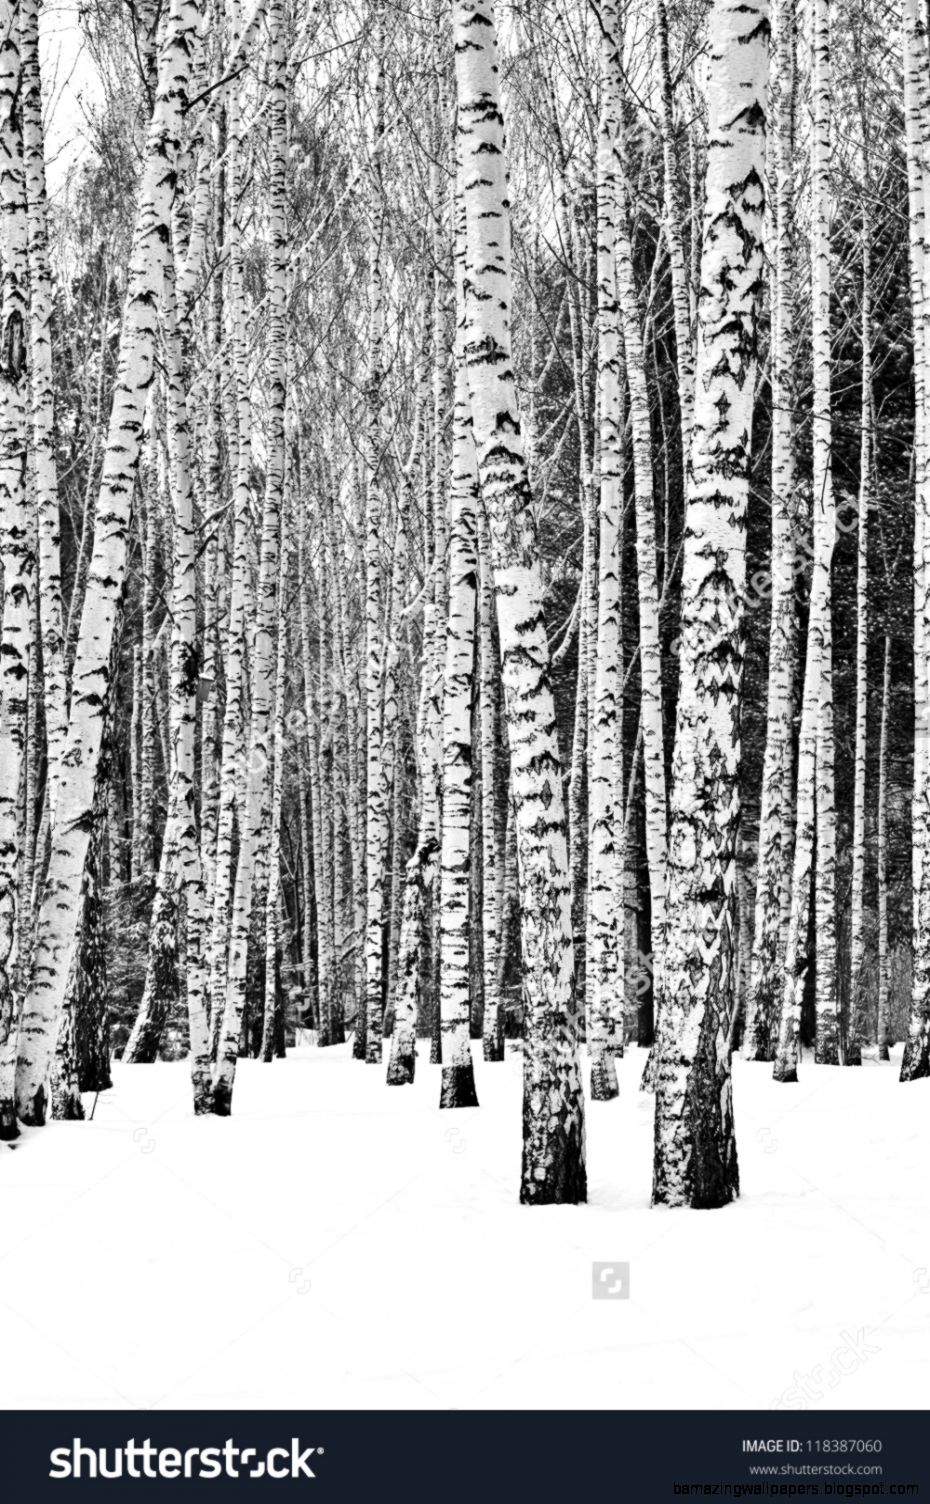 Birch Trees In A Snowy Forest In Black And White Stock Photo